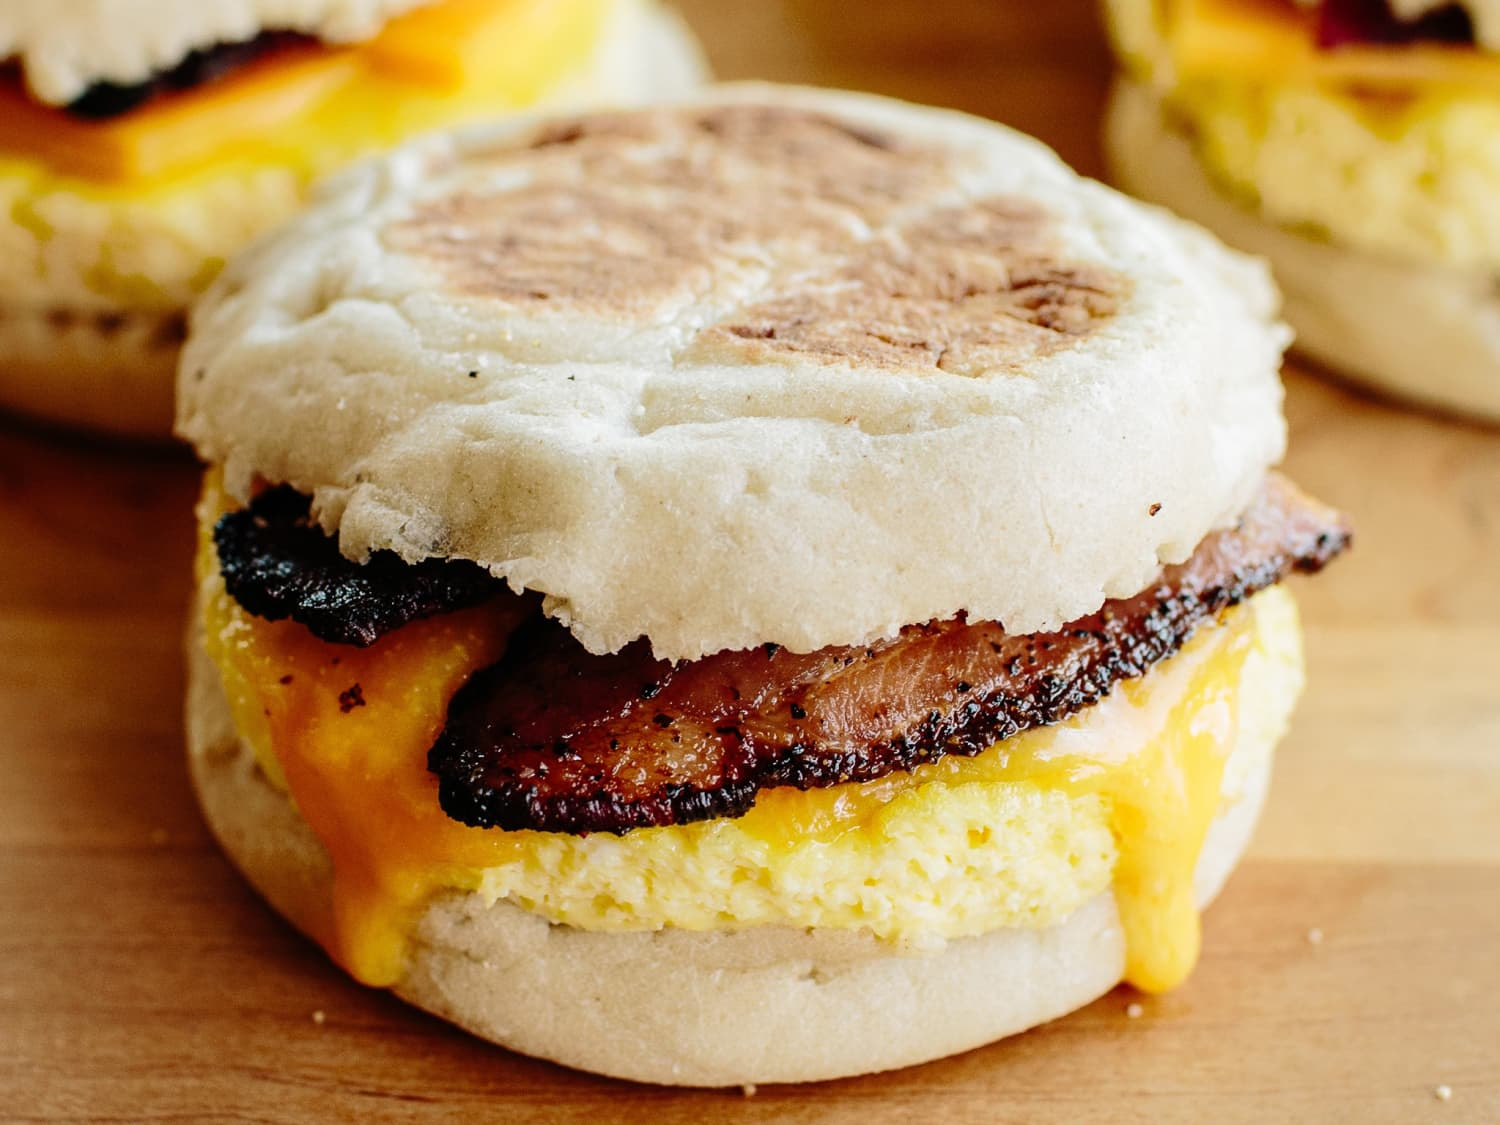 How To Make Freezer Friendly Breakfast Sandwiches